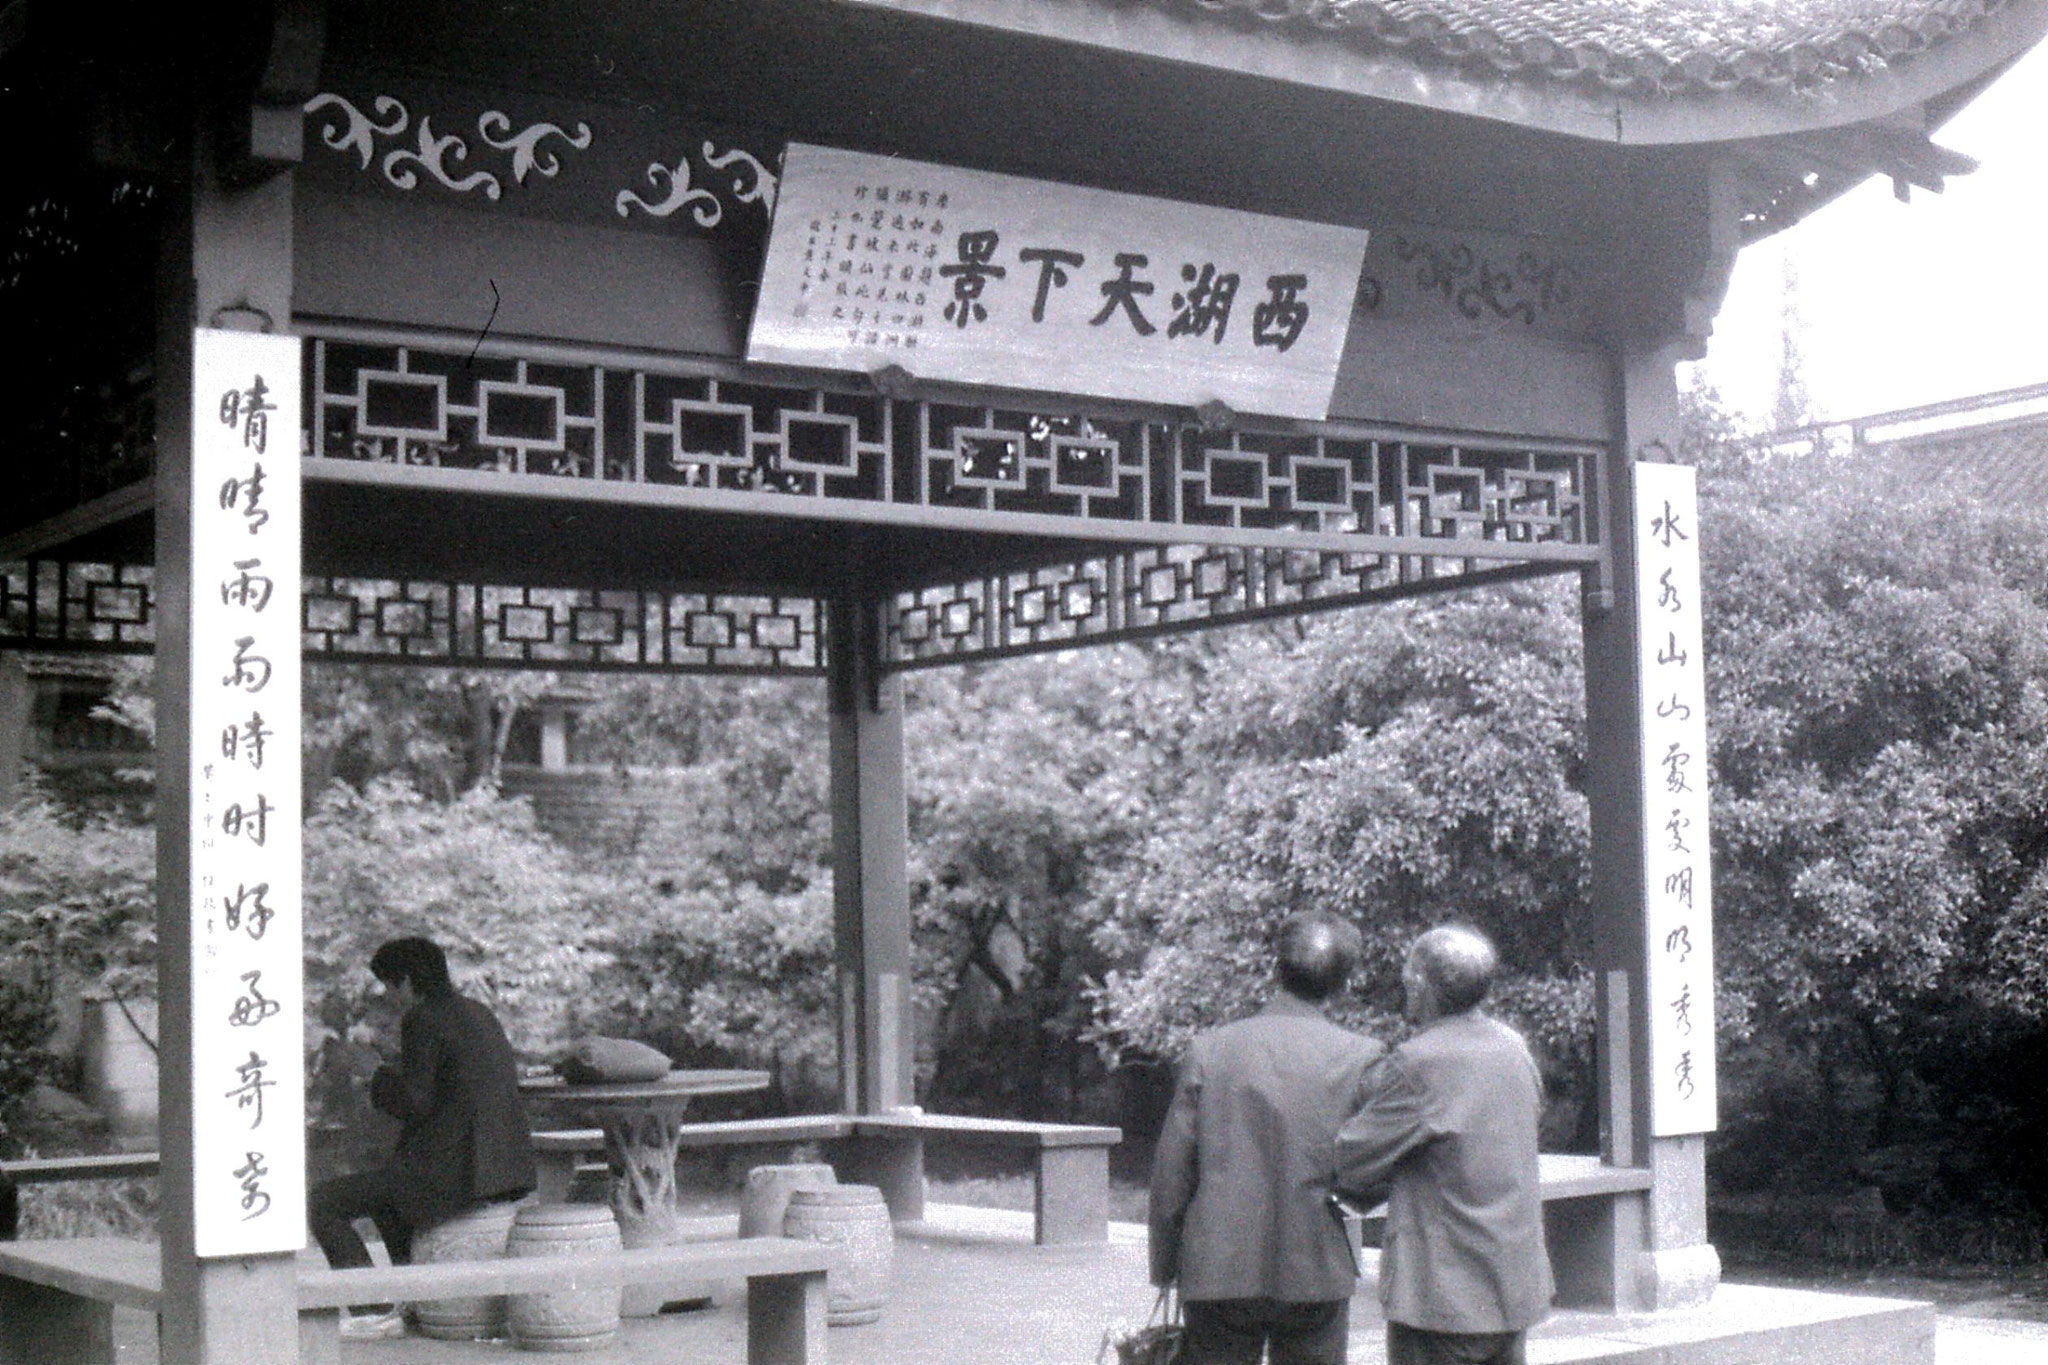 23/5/1989:1: Hangzhou Small West Lake inscription